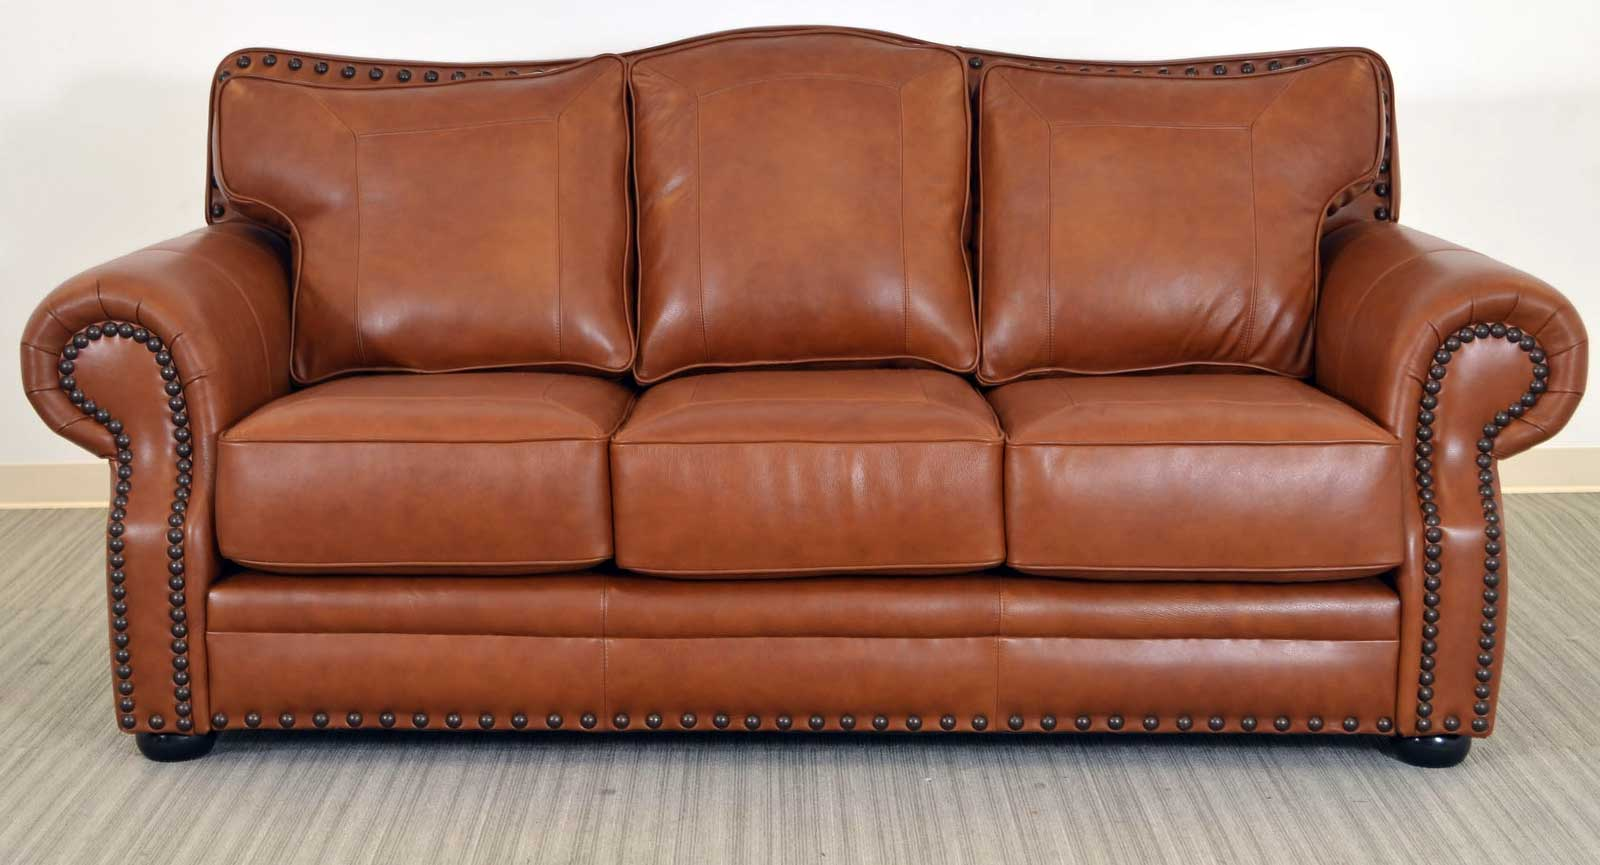 Kennedy Sofa The Leather Sofa Company ~ Leather Sofa With Nailheads